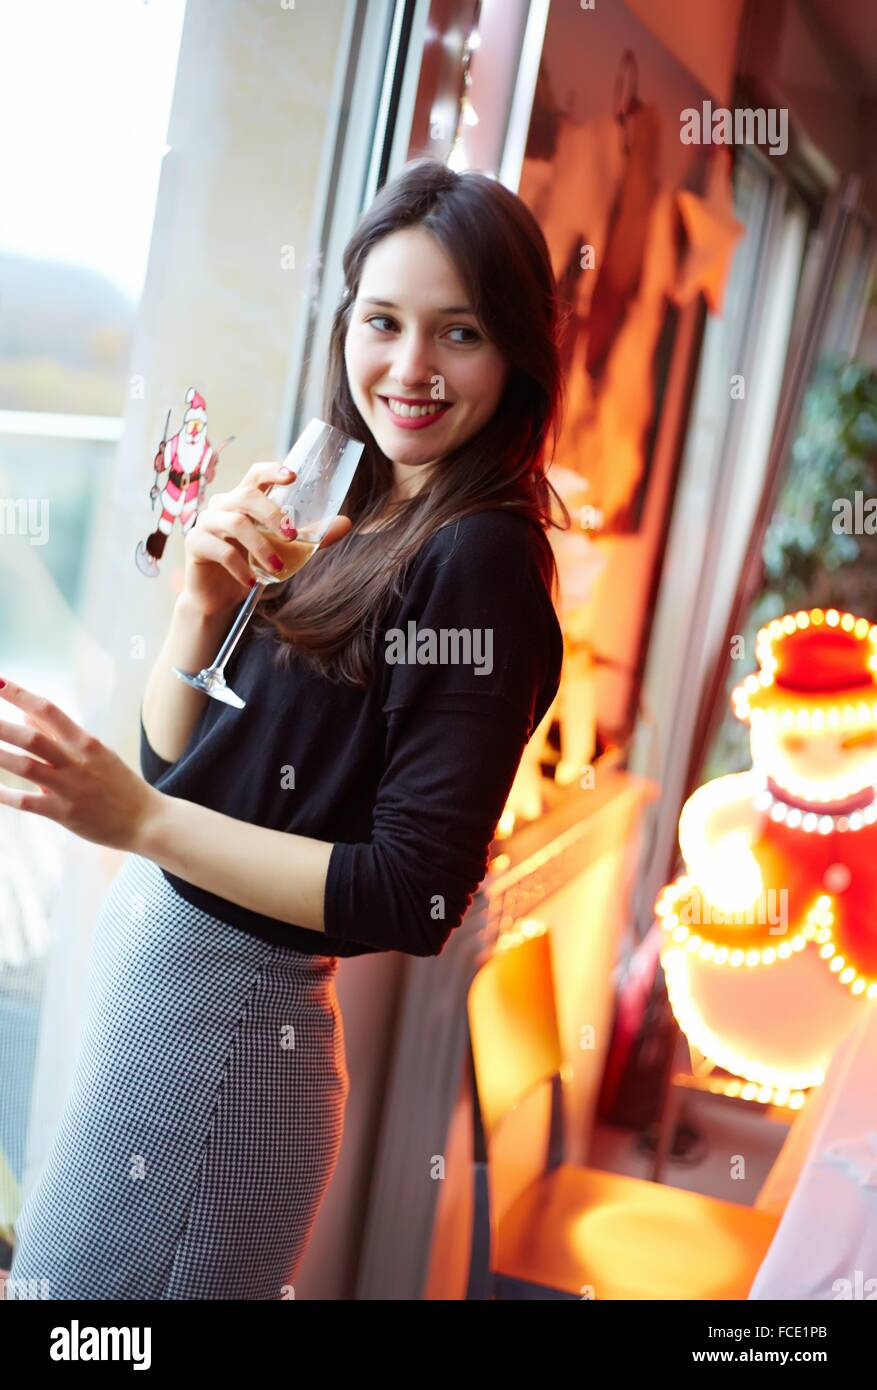 25 year old girl. Christmas. Glass of champagne. - Stock Image